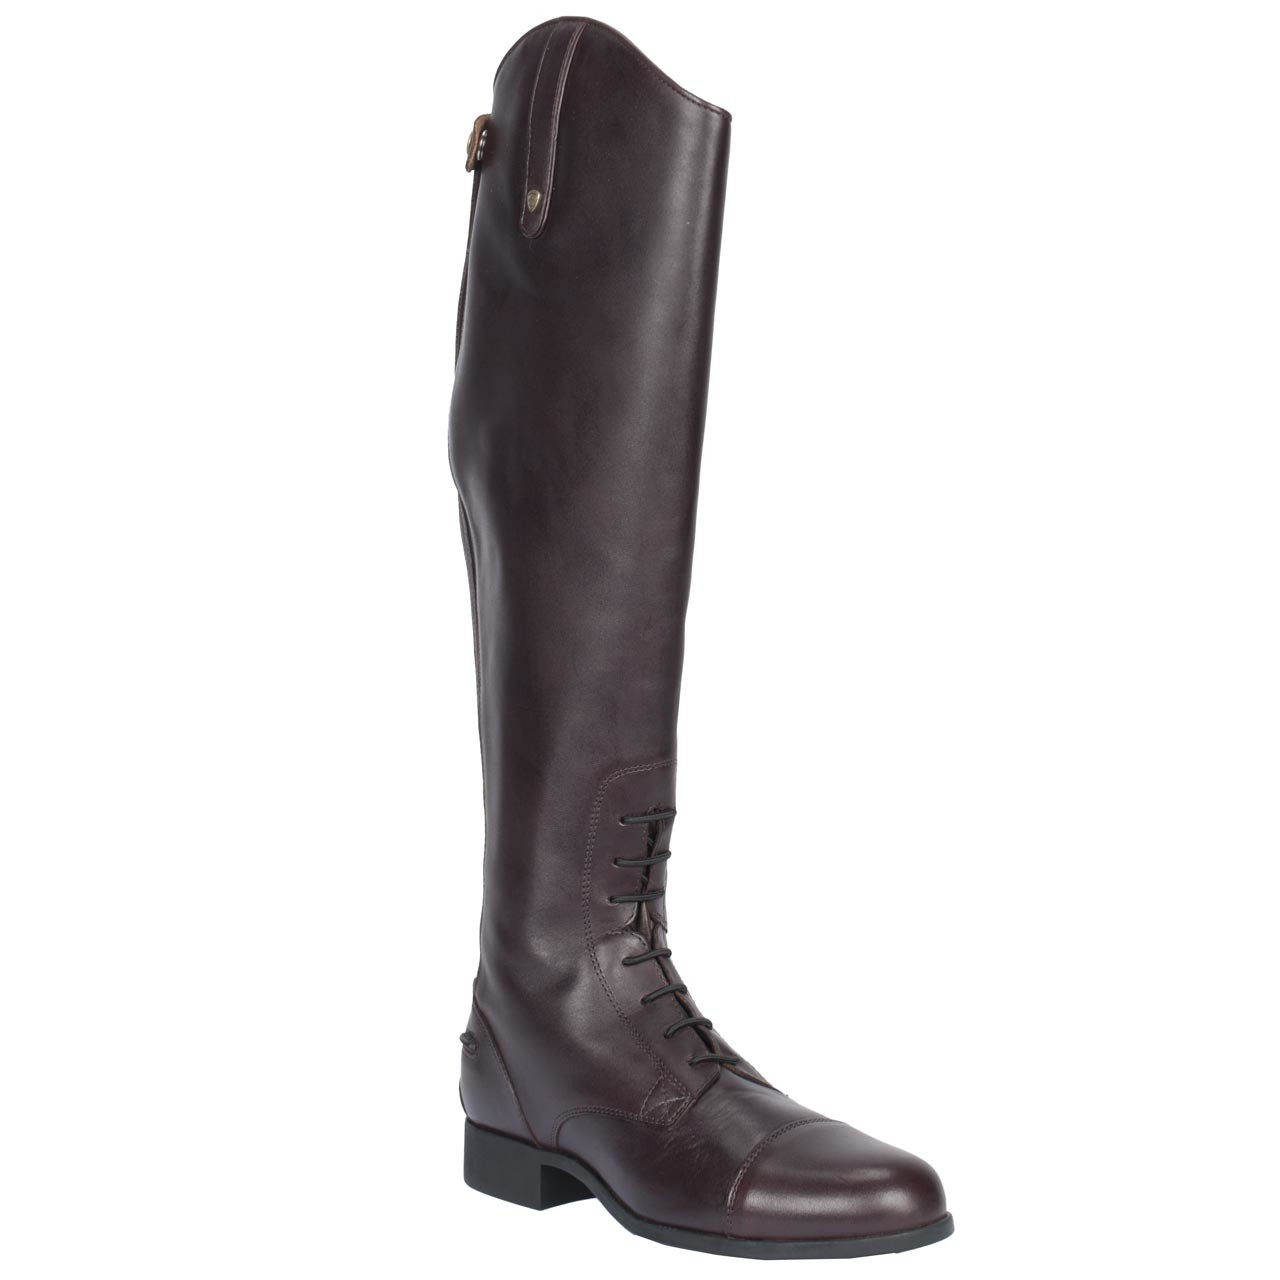 Ariat Heritage Field WM rijlaars